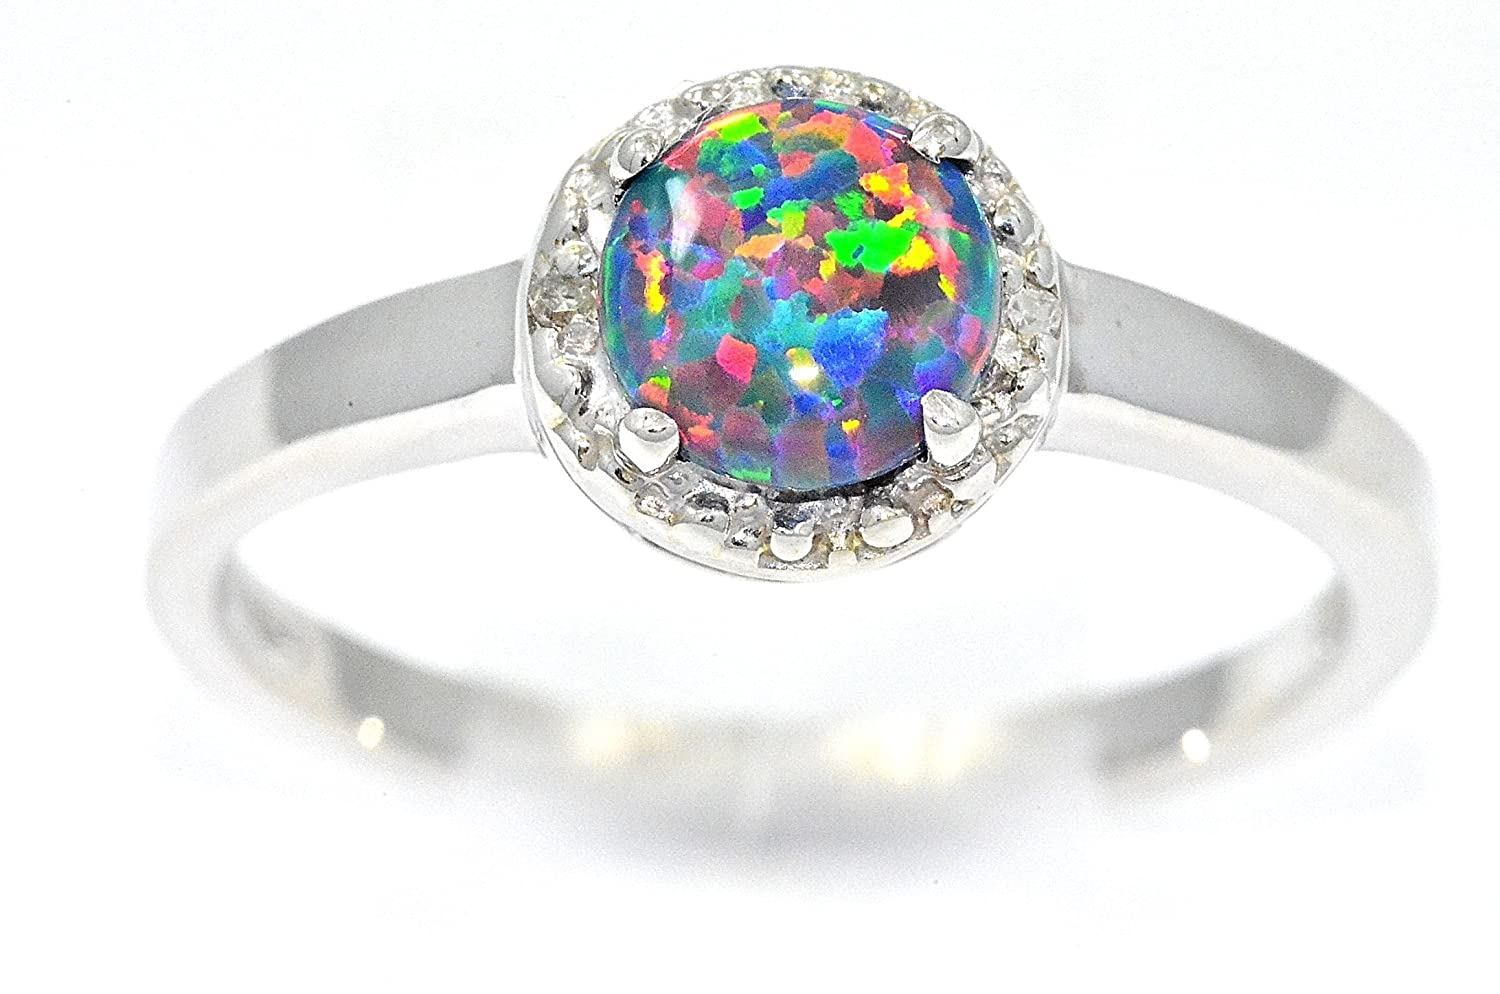 betteridge rings p opal black diamond platinum ring collection engagement estate cluster